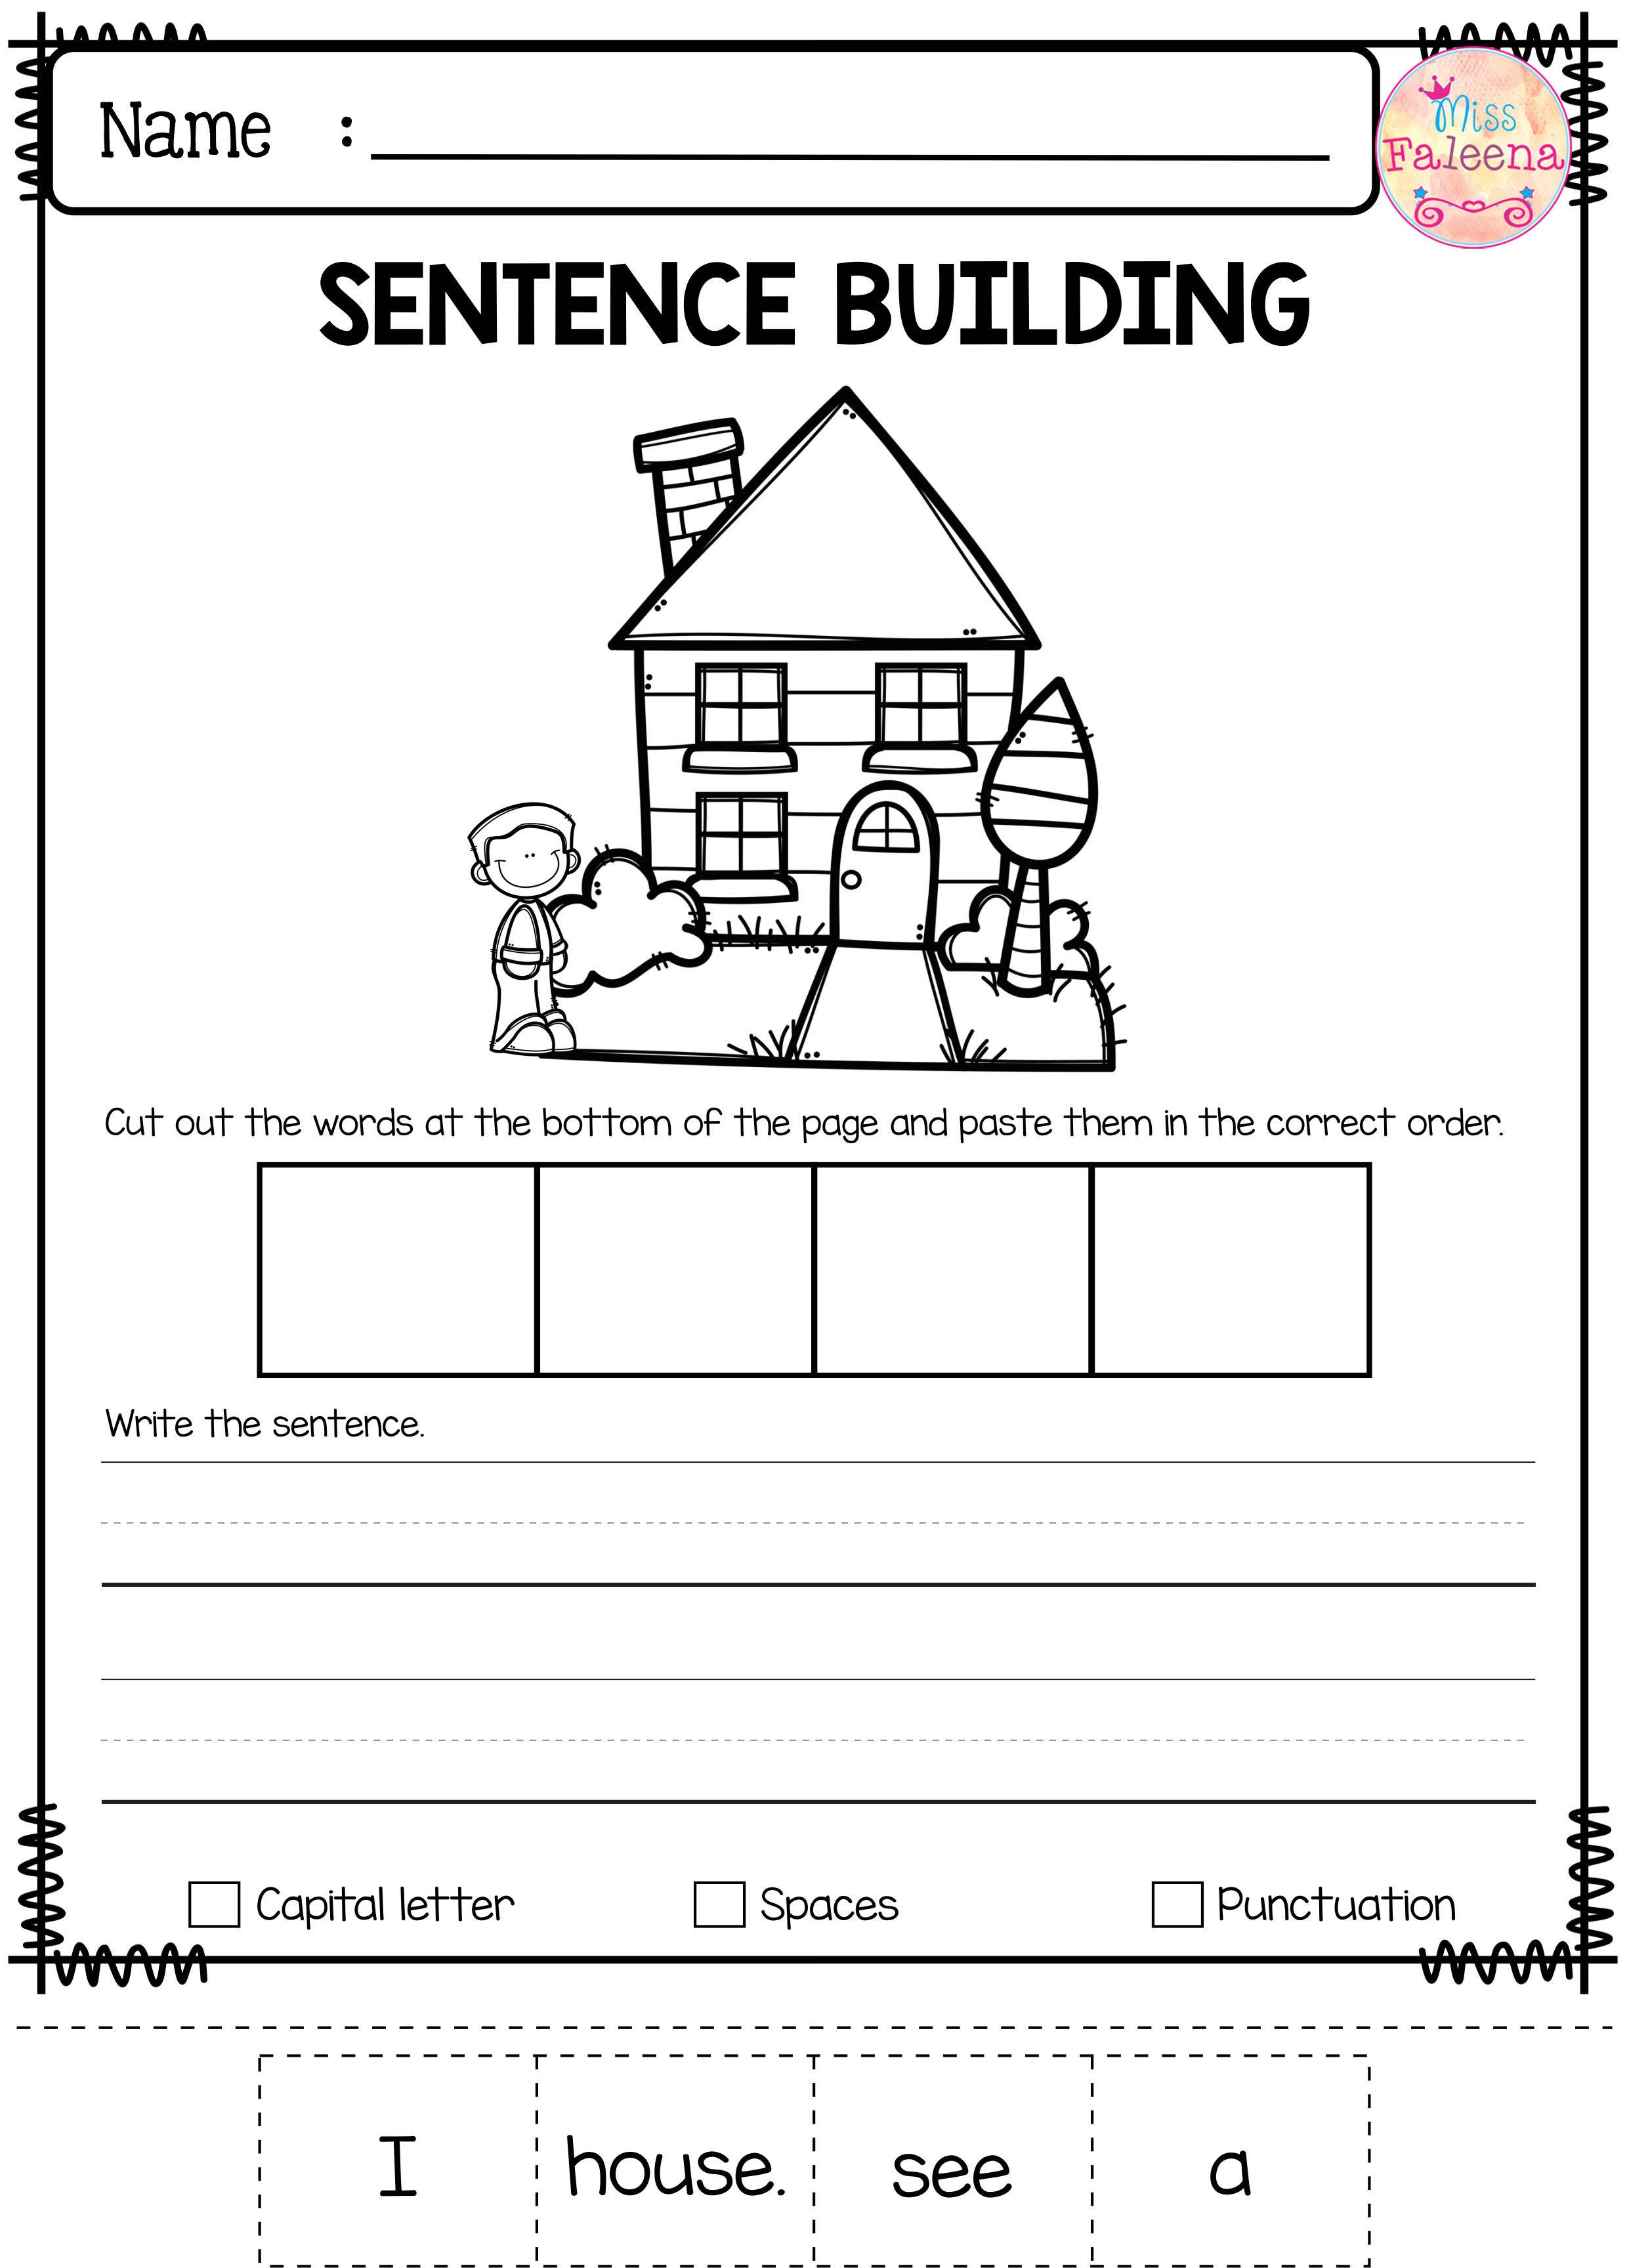 Free Sentence Building With Images Sentence Building